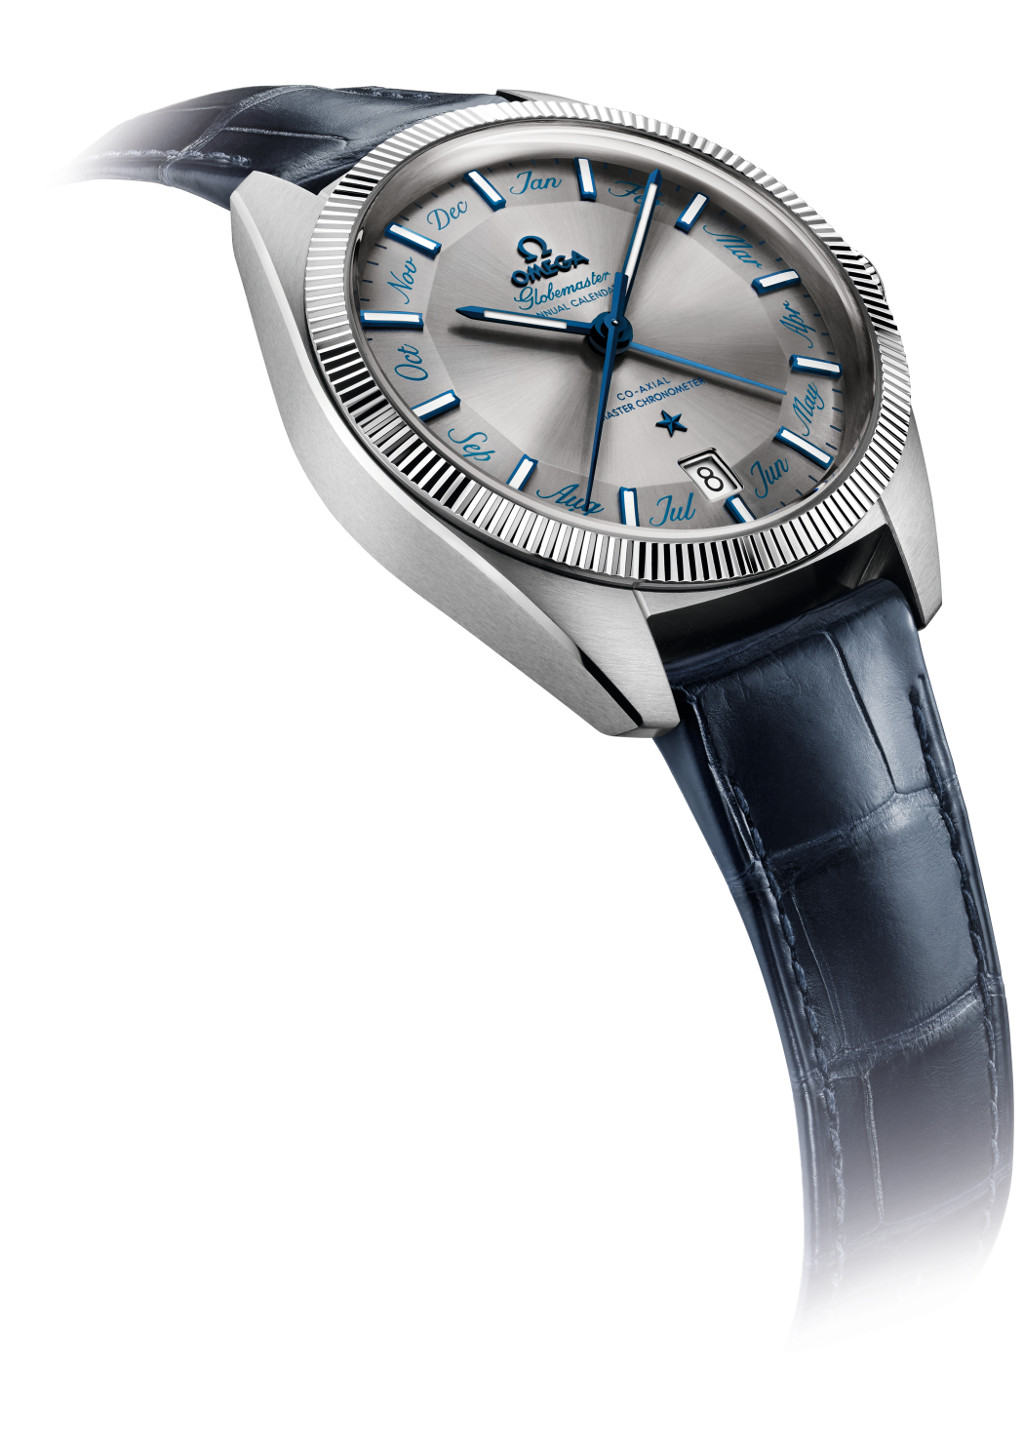 The watch is available in several variants, in which the one pictured above is fitted with a stainless steel case and a tungstun carbide bezel.